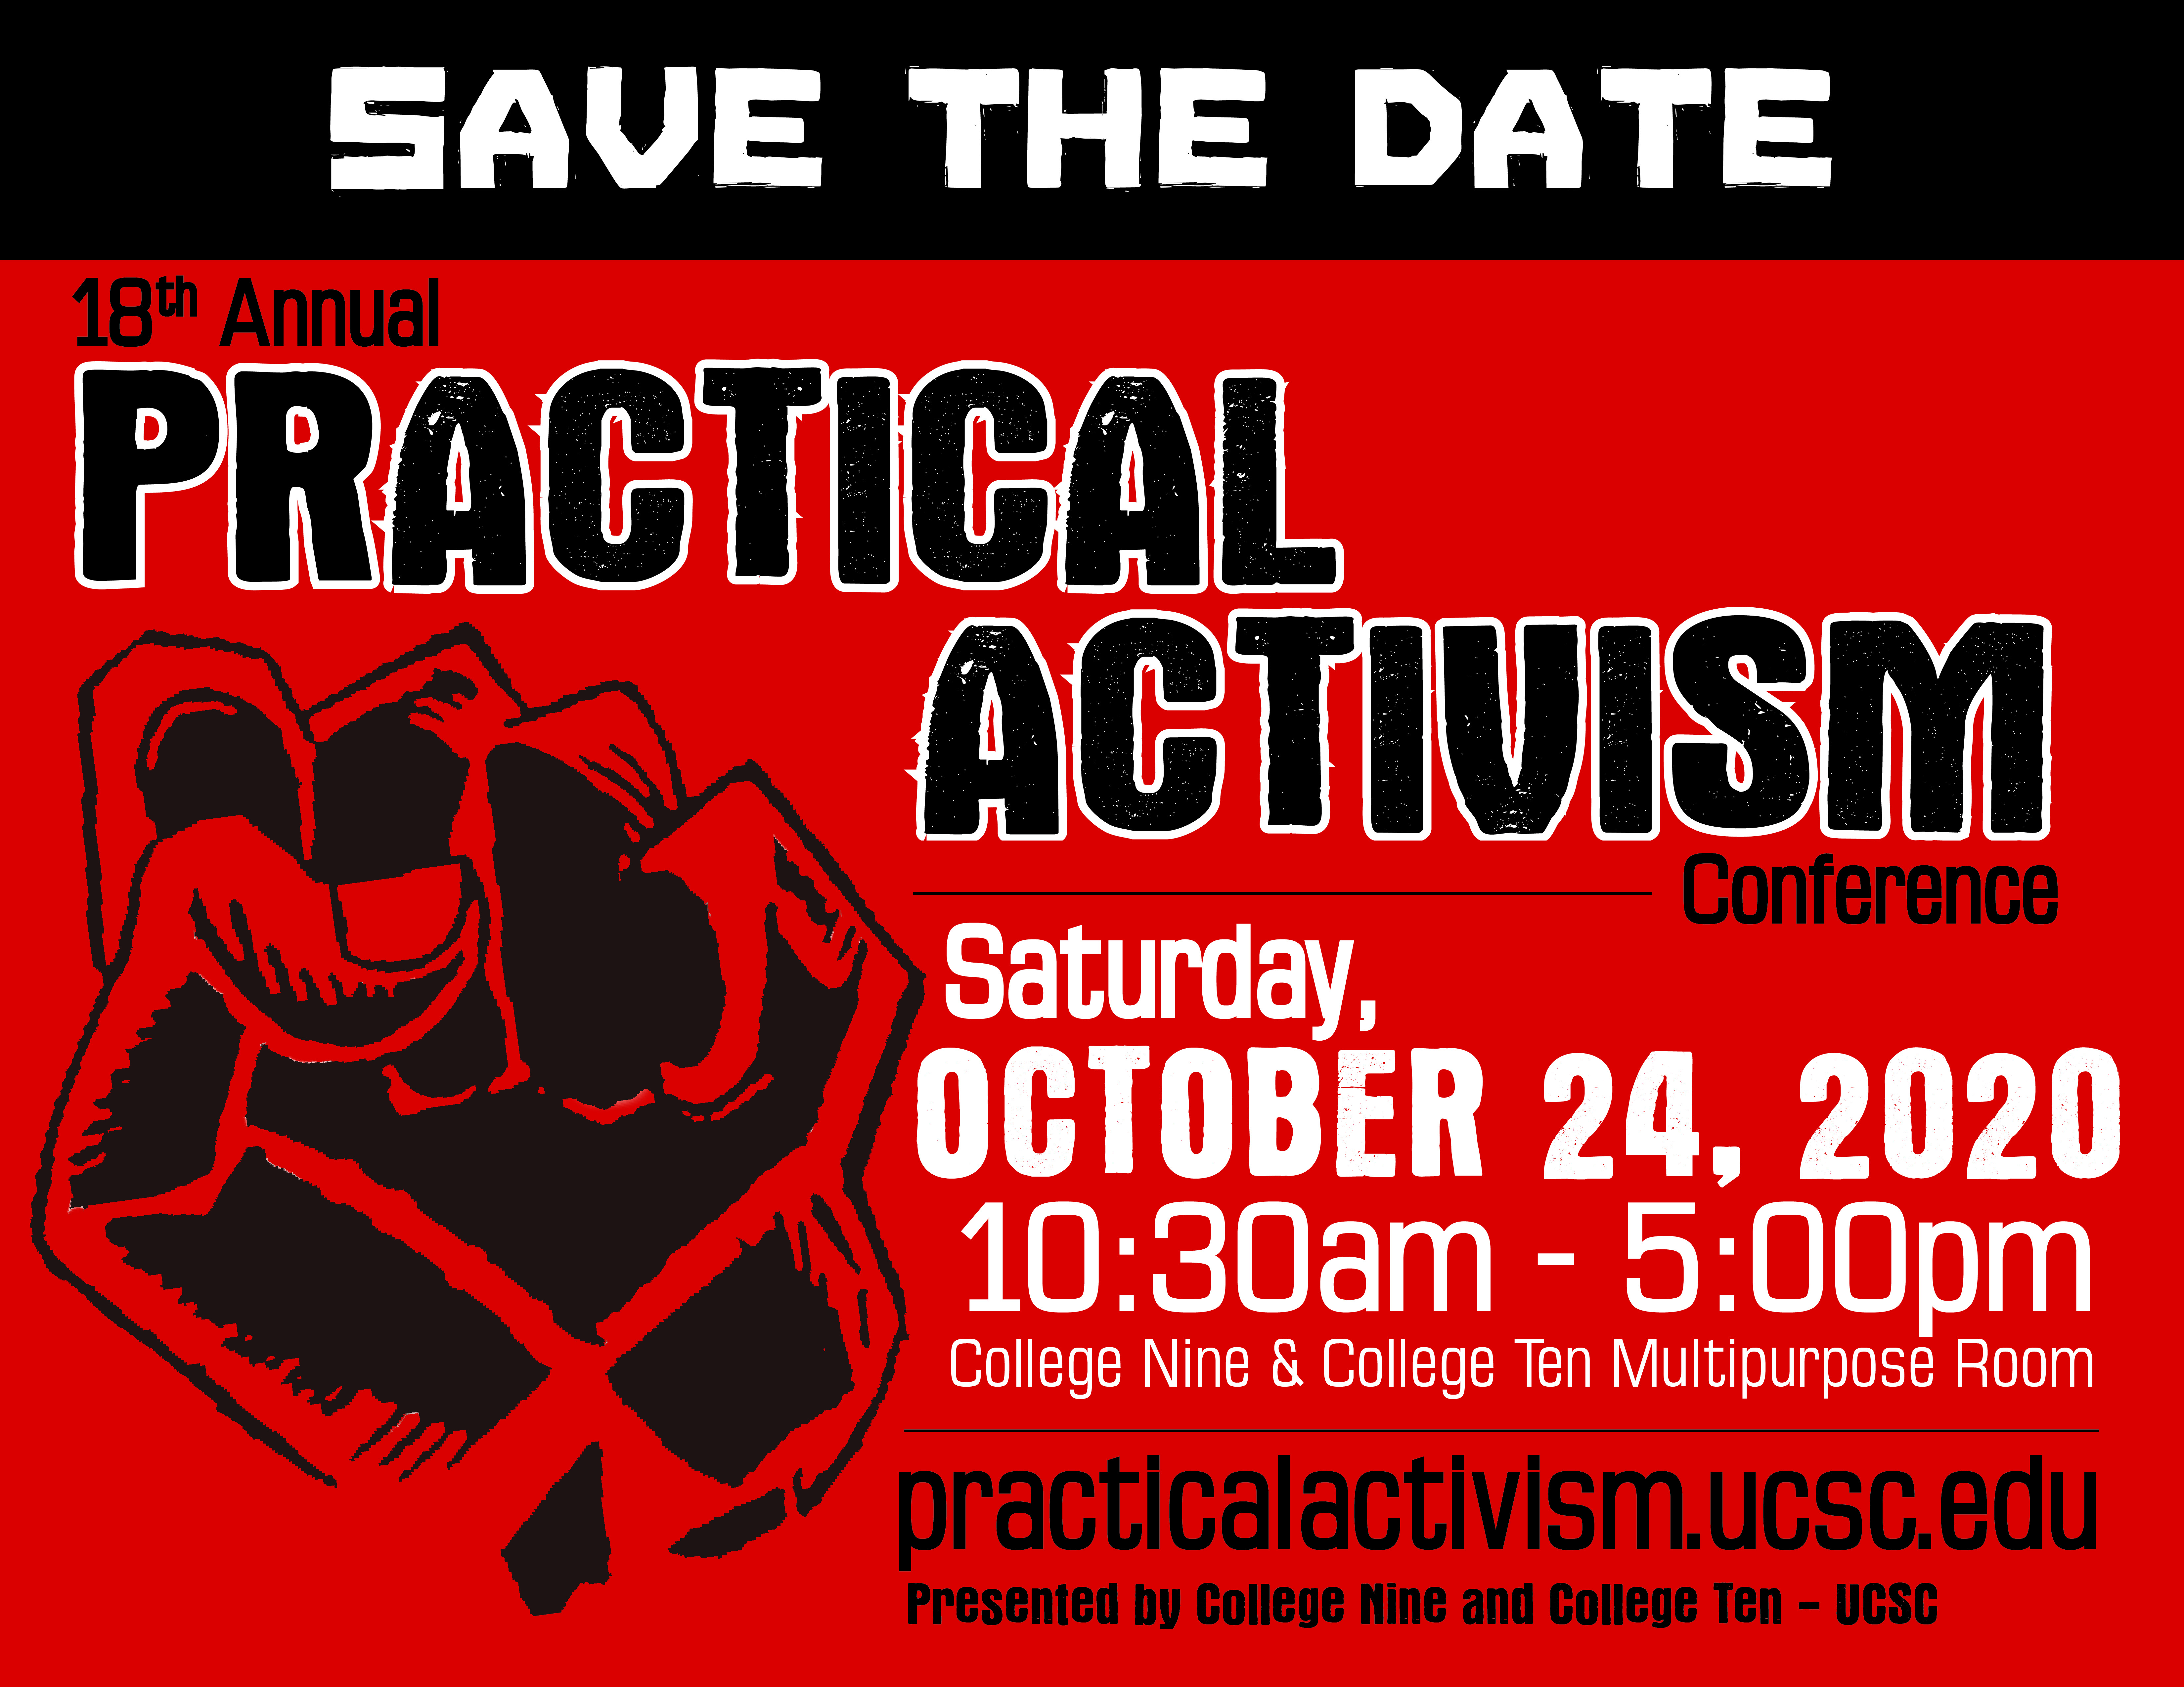 Save the Date! Practical Activism Conference is October 20, 2018